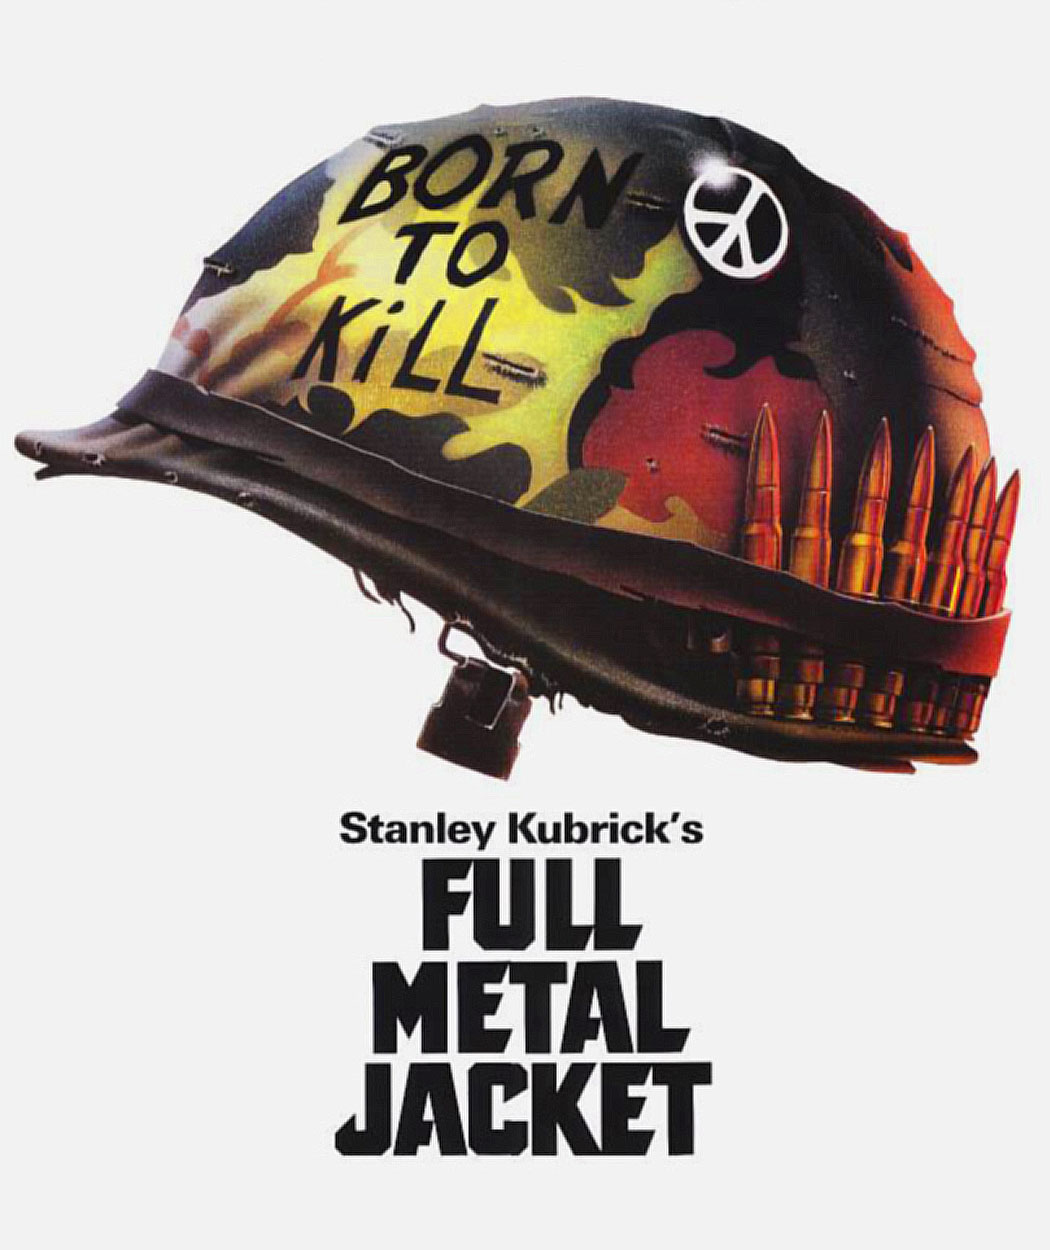 Full Metal Jacket poster e locandina